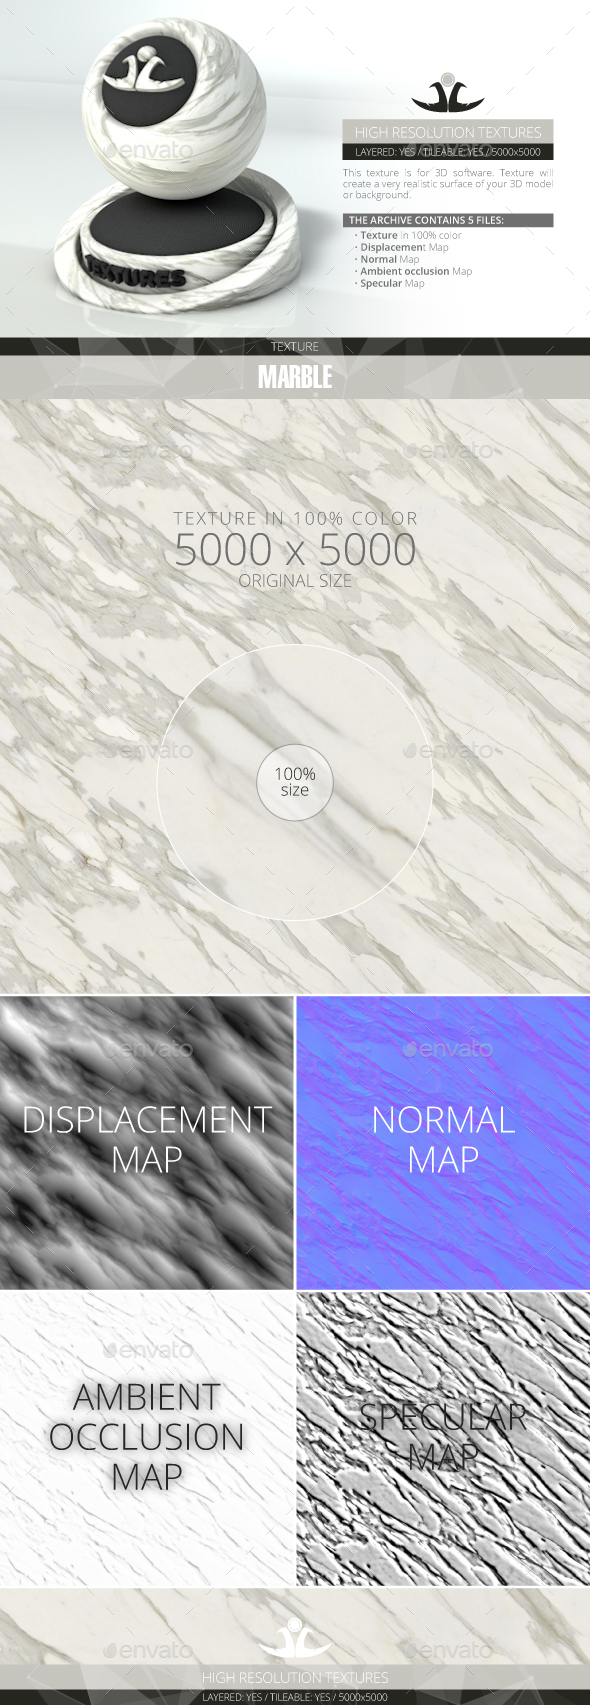 Marble - 3DOcean Item for Sale